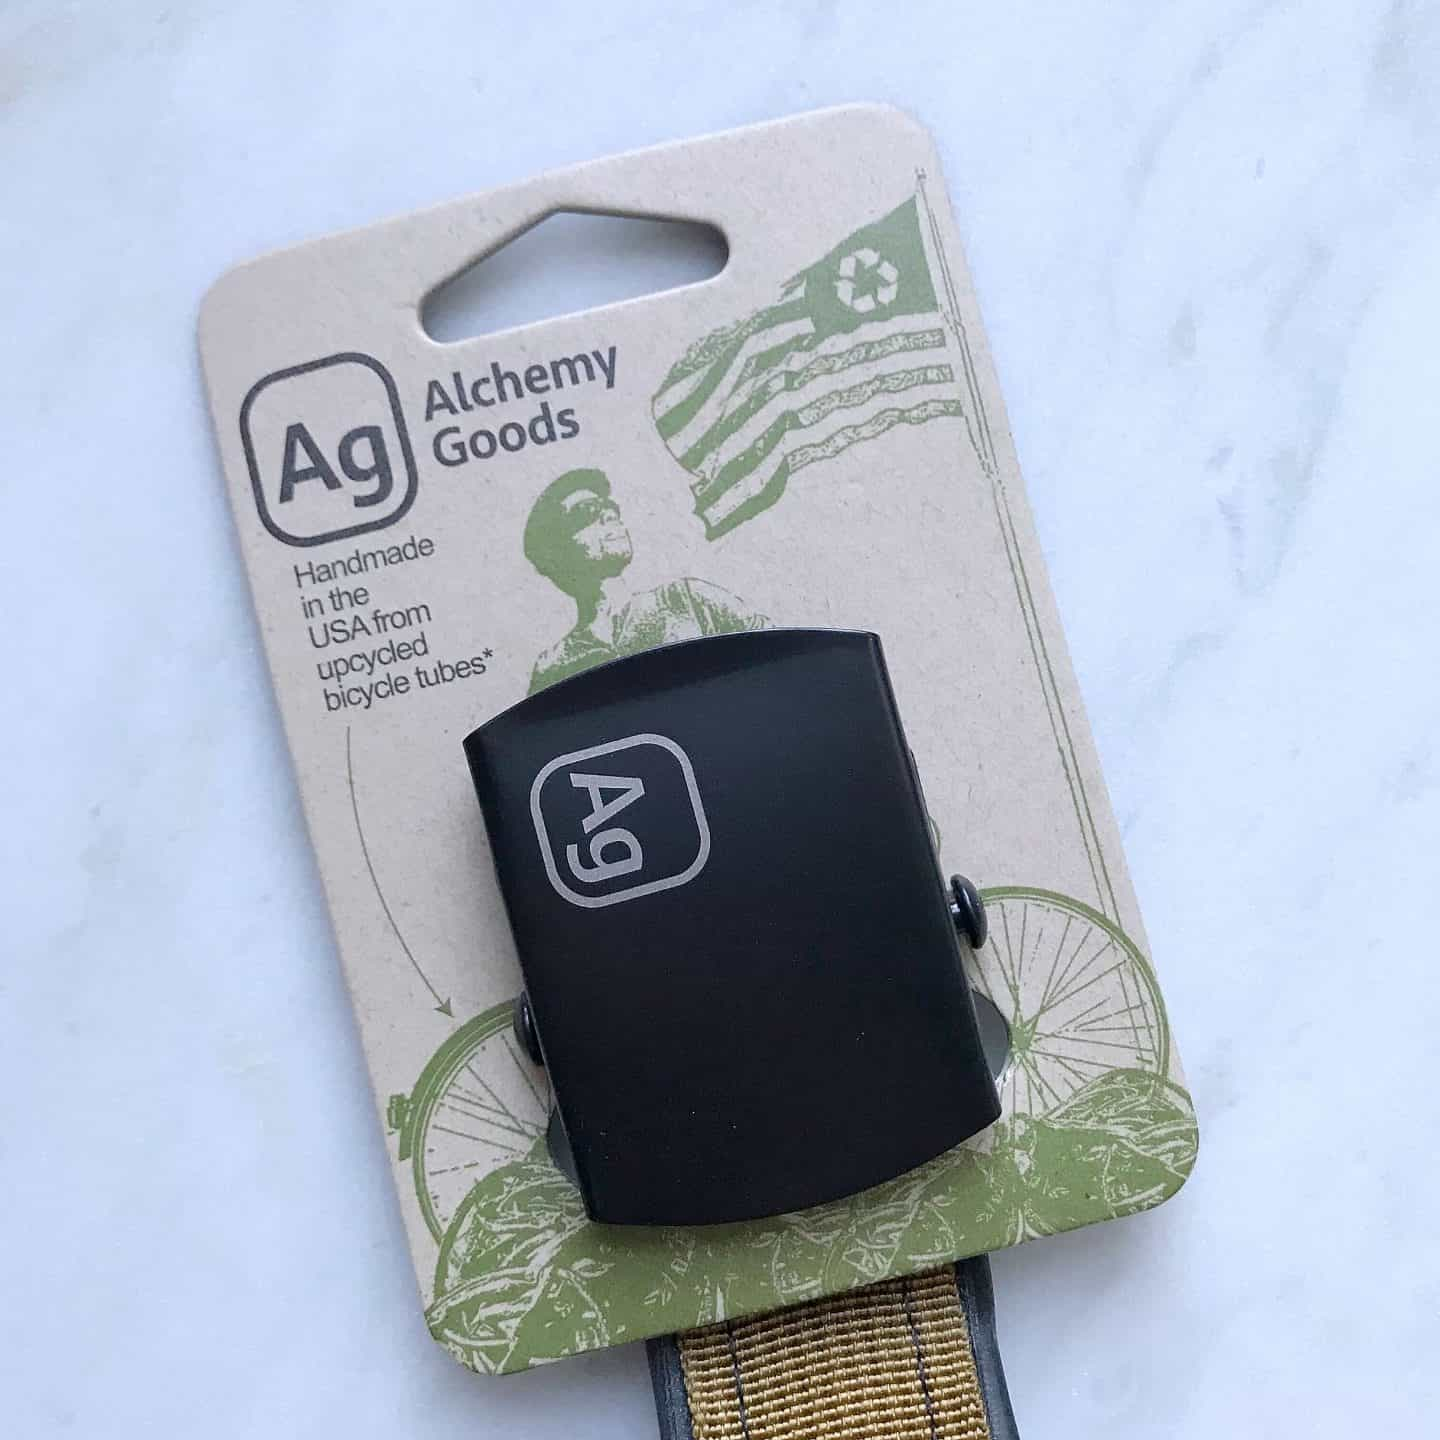 Alchemy Goods recycled belt from Uncommon Goods